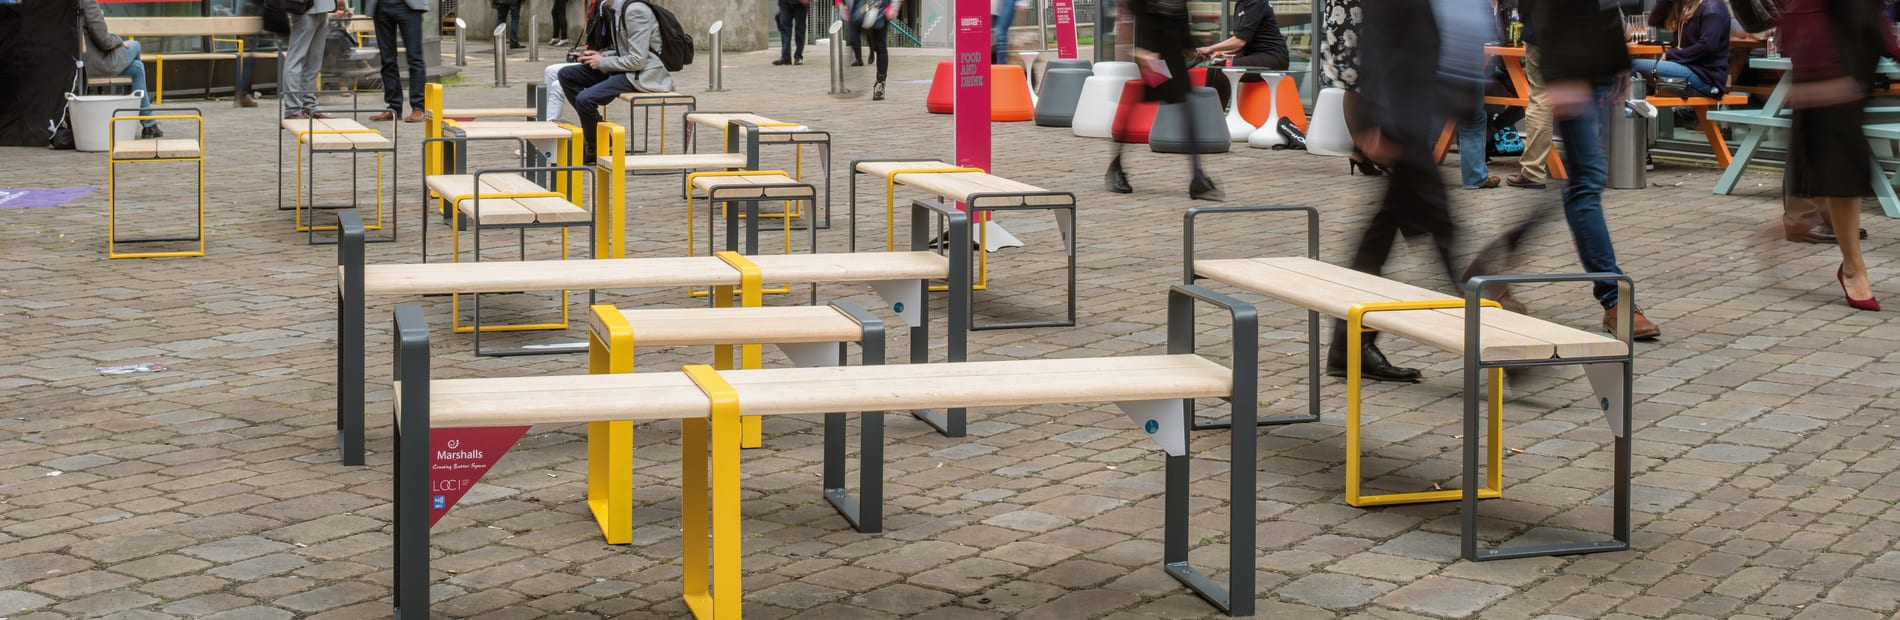 Members of the public sitting on and waling around temporary street furniture benches